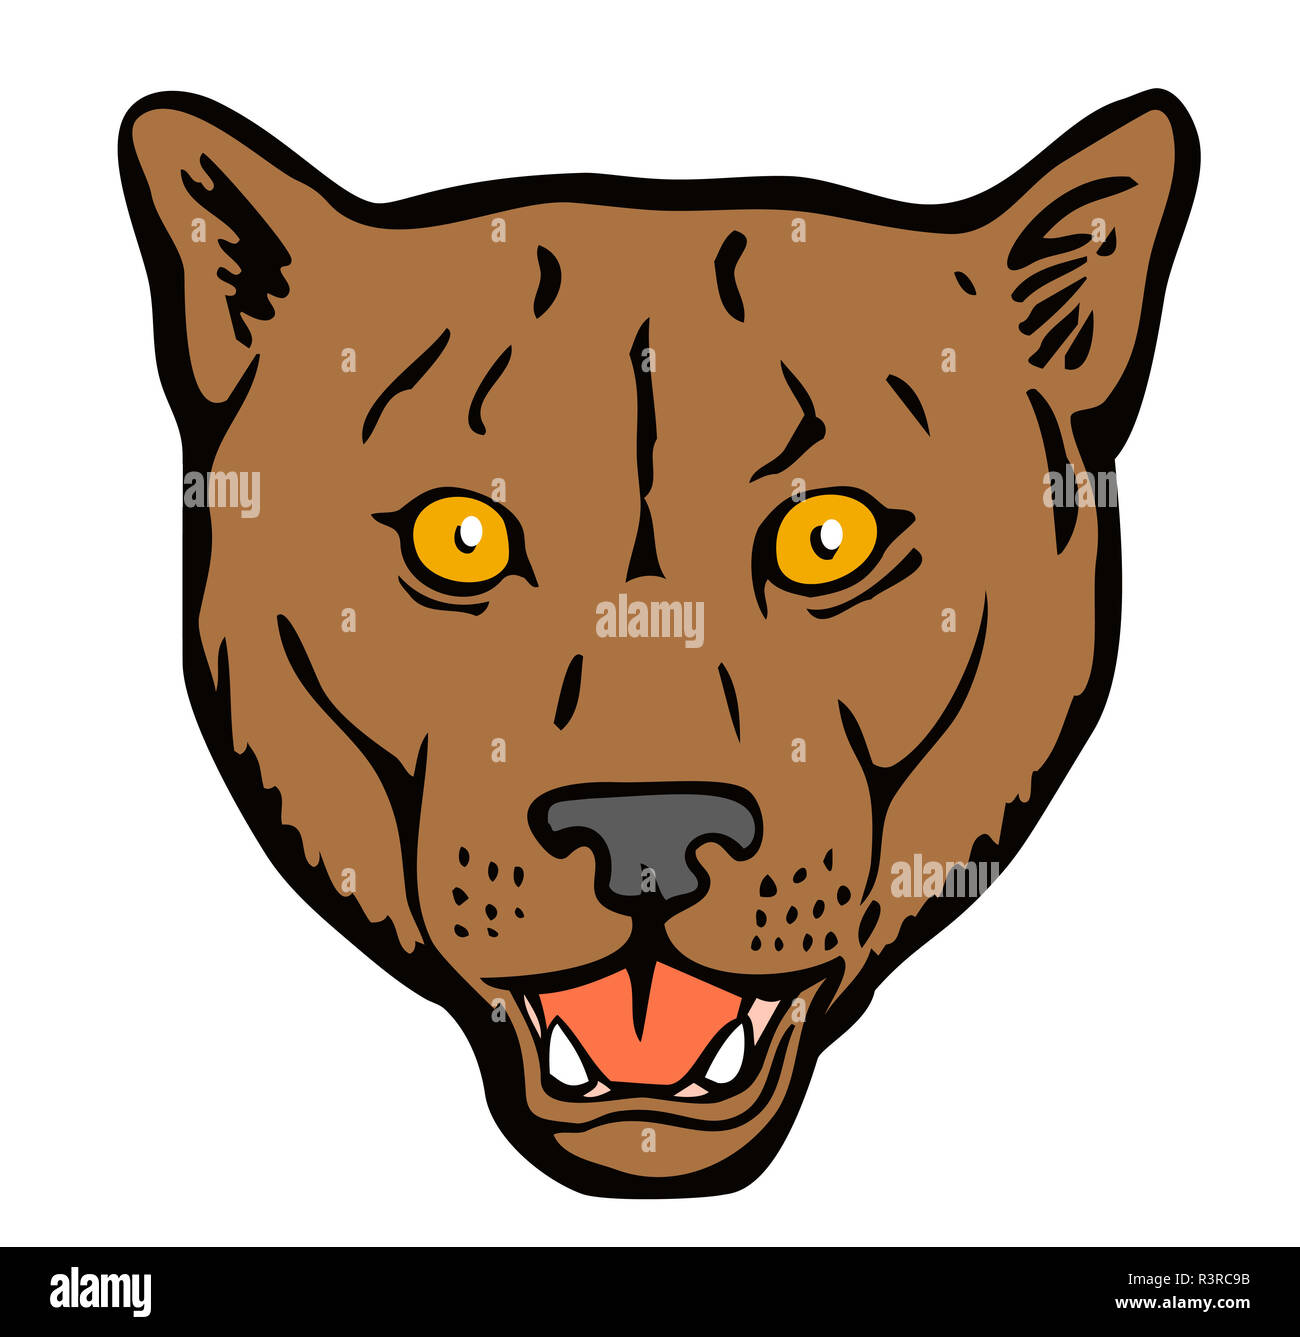 Anthro Lion Head Template Wwwmiifotoscom